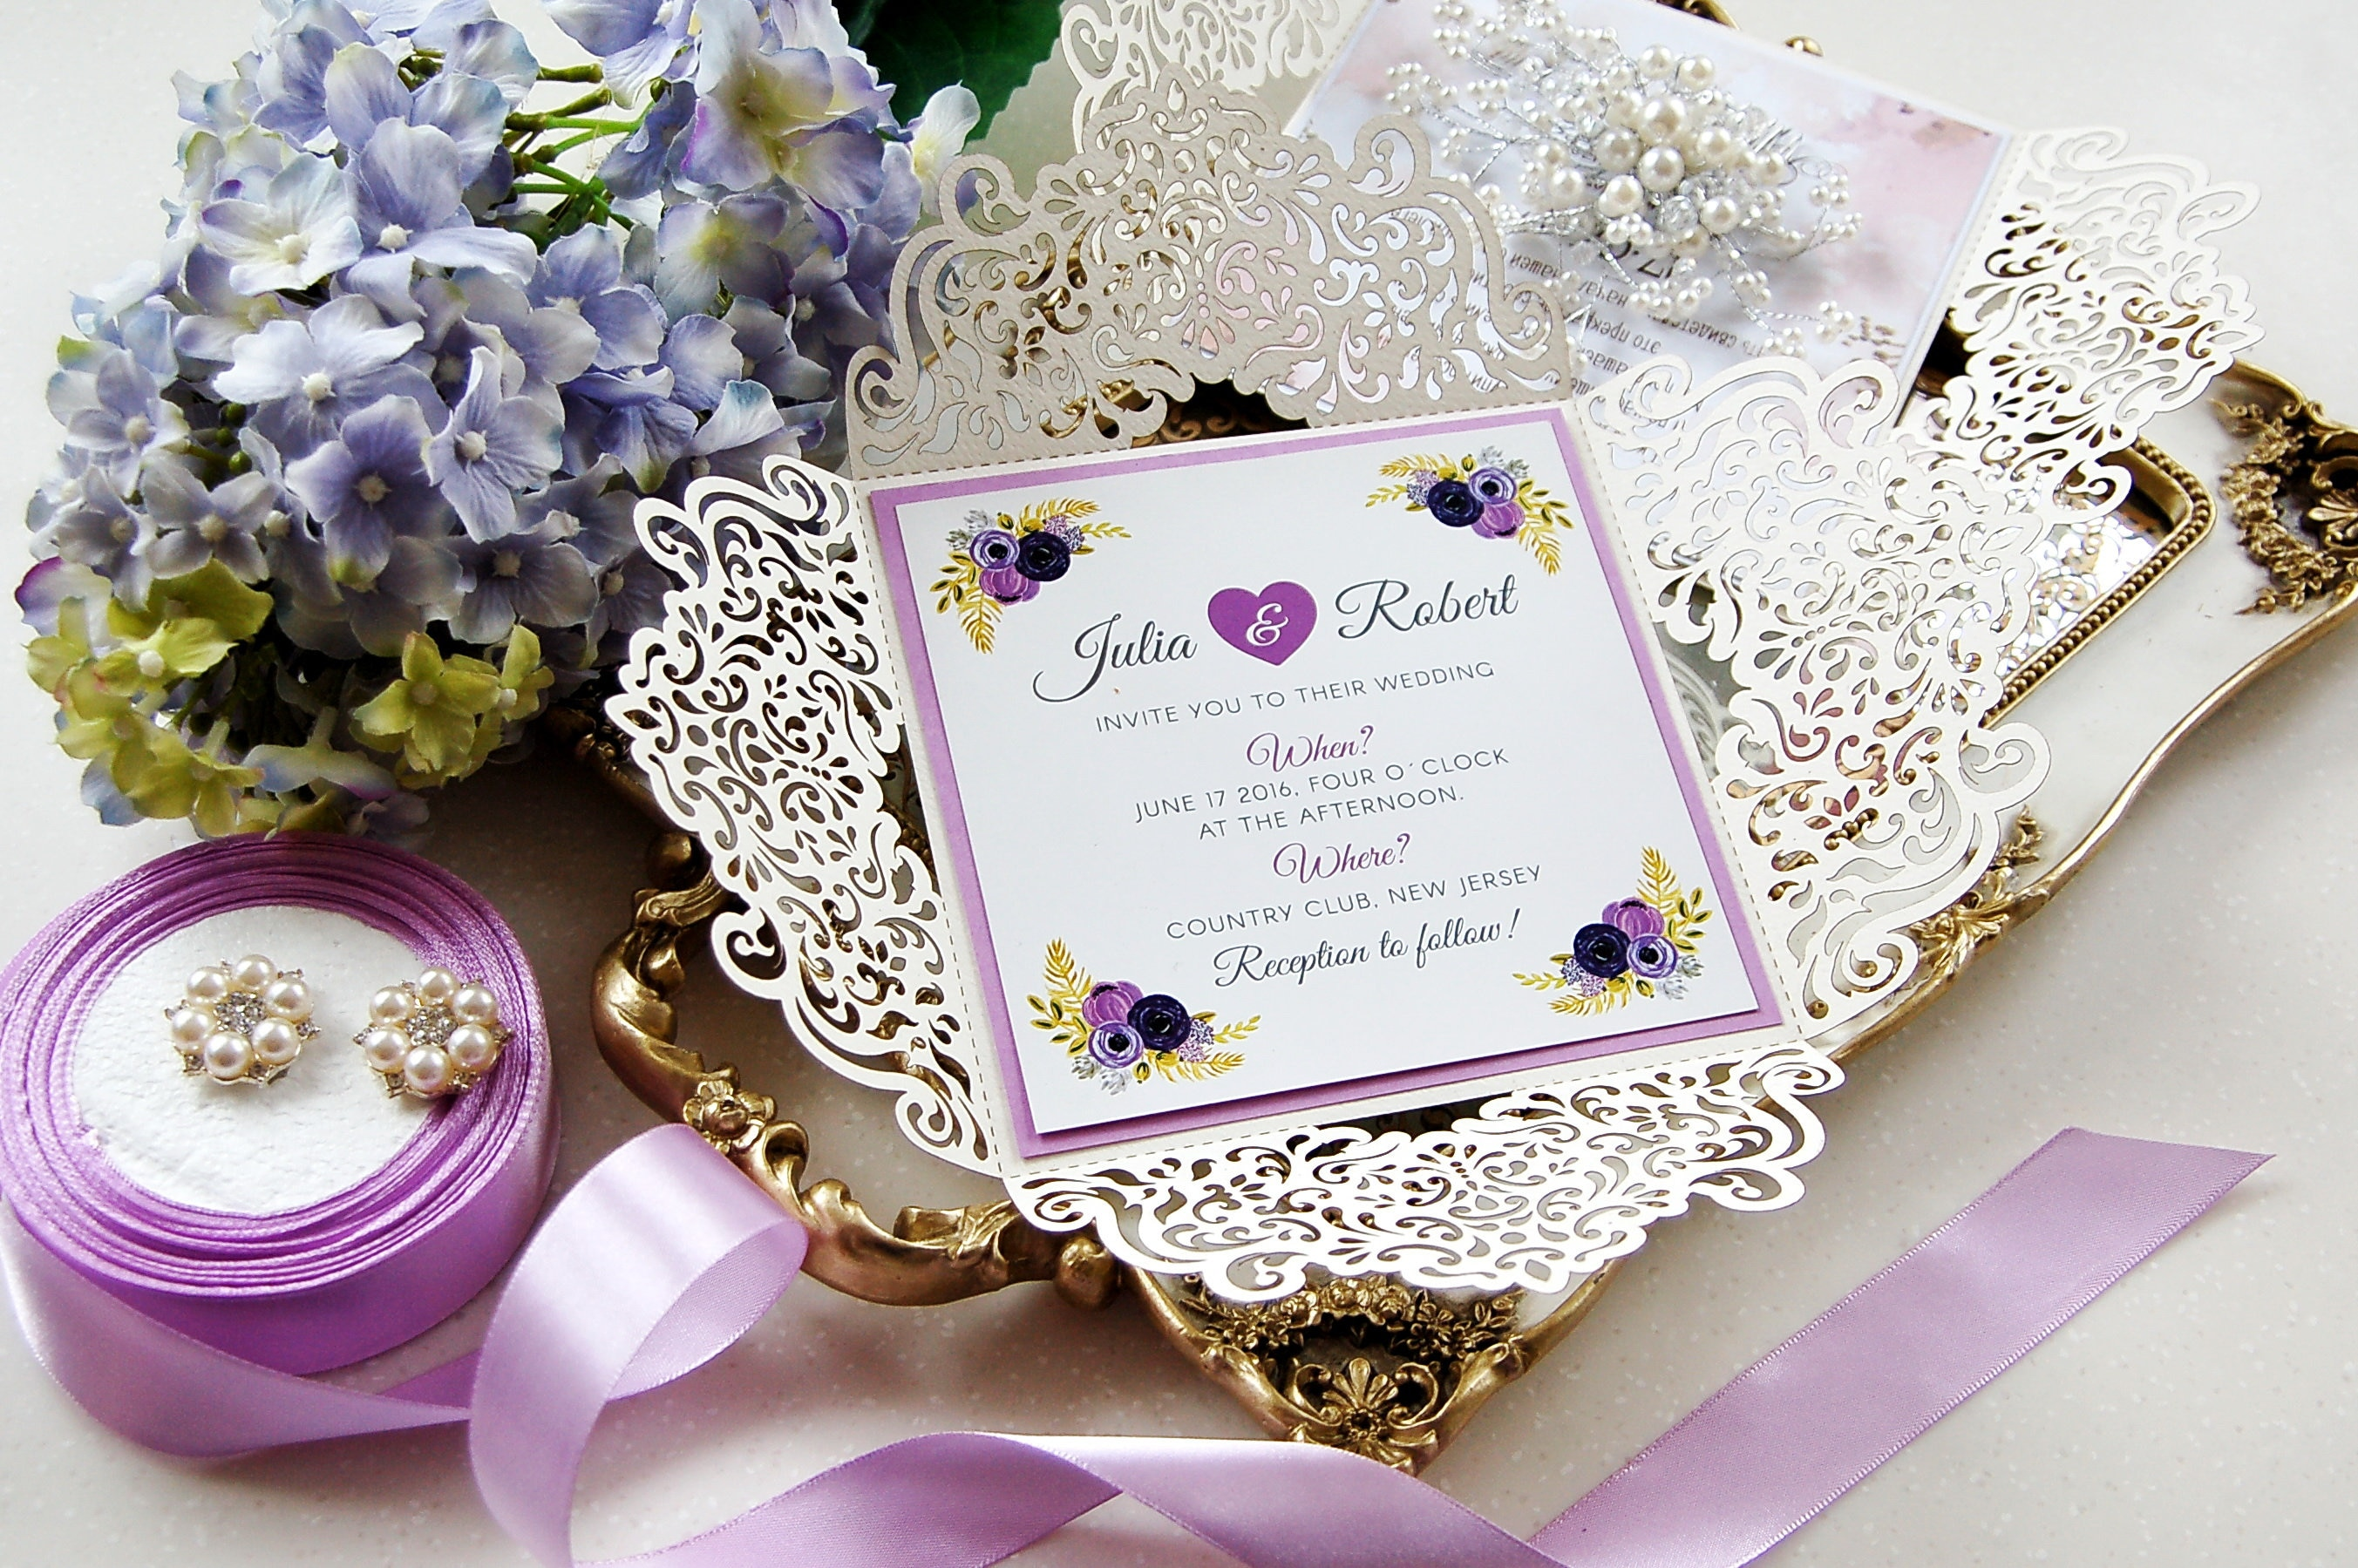 Laser Cut Invitations Set of 4 Wedding RSVP Card Template